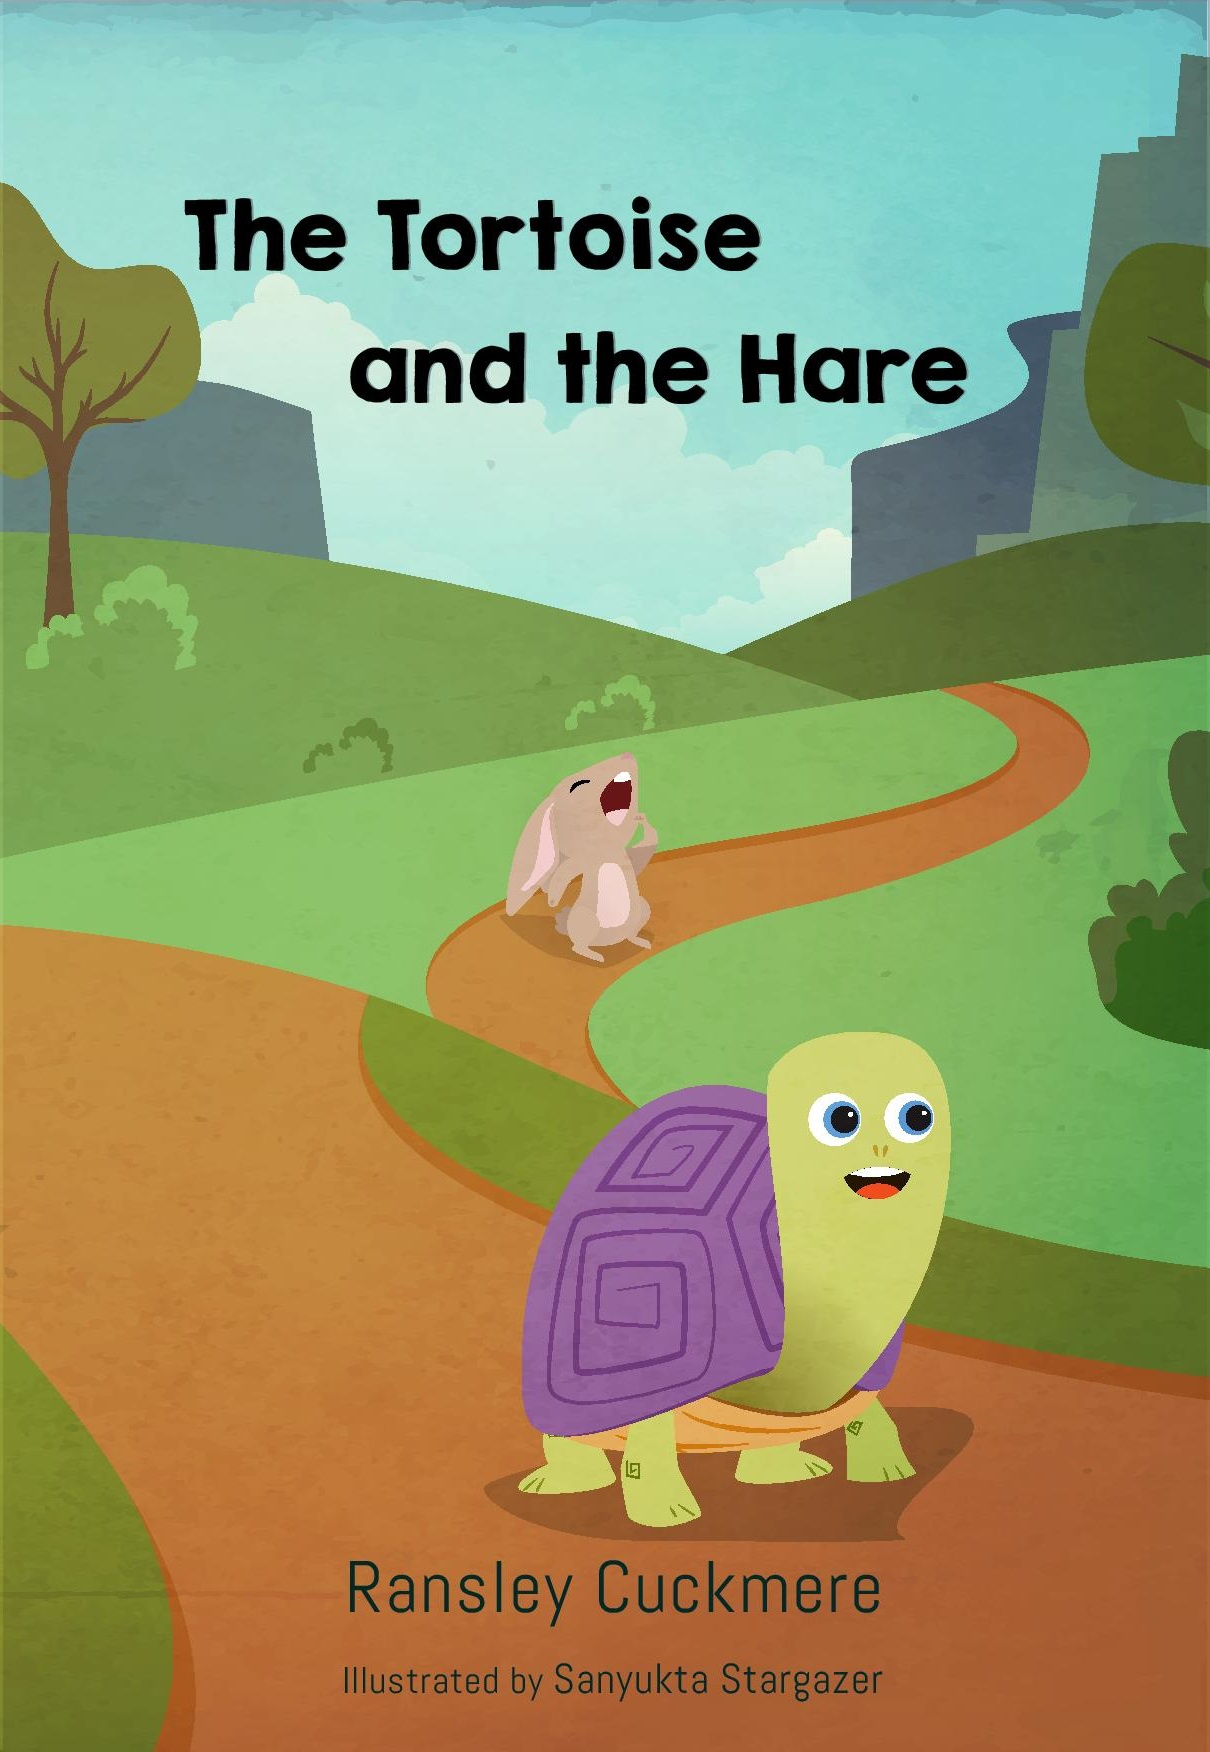 tortoise and the hare essay The tortoise and the hare is one of many fables written by aesop fables use animals in human situations to convey a lesson, such as being a good friend or the perils of bragging too much.